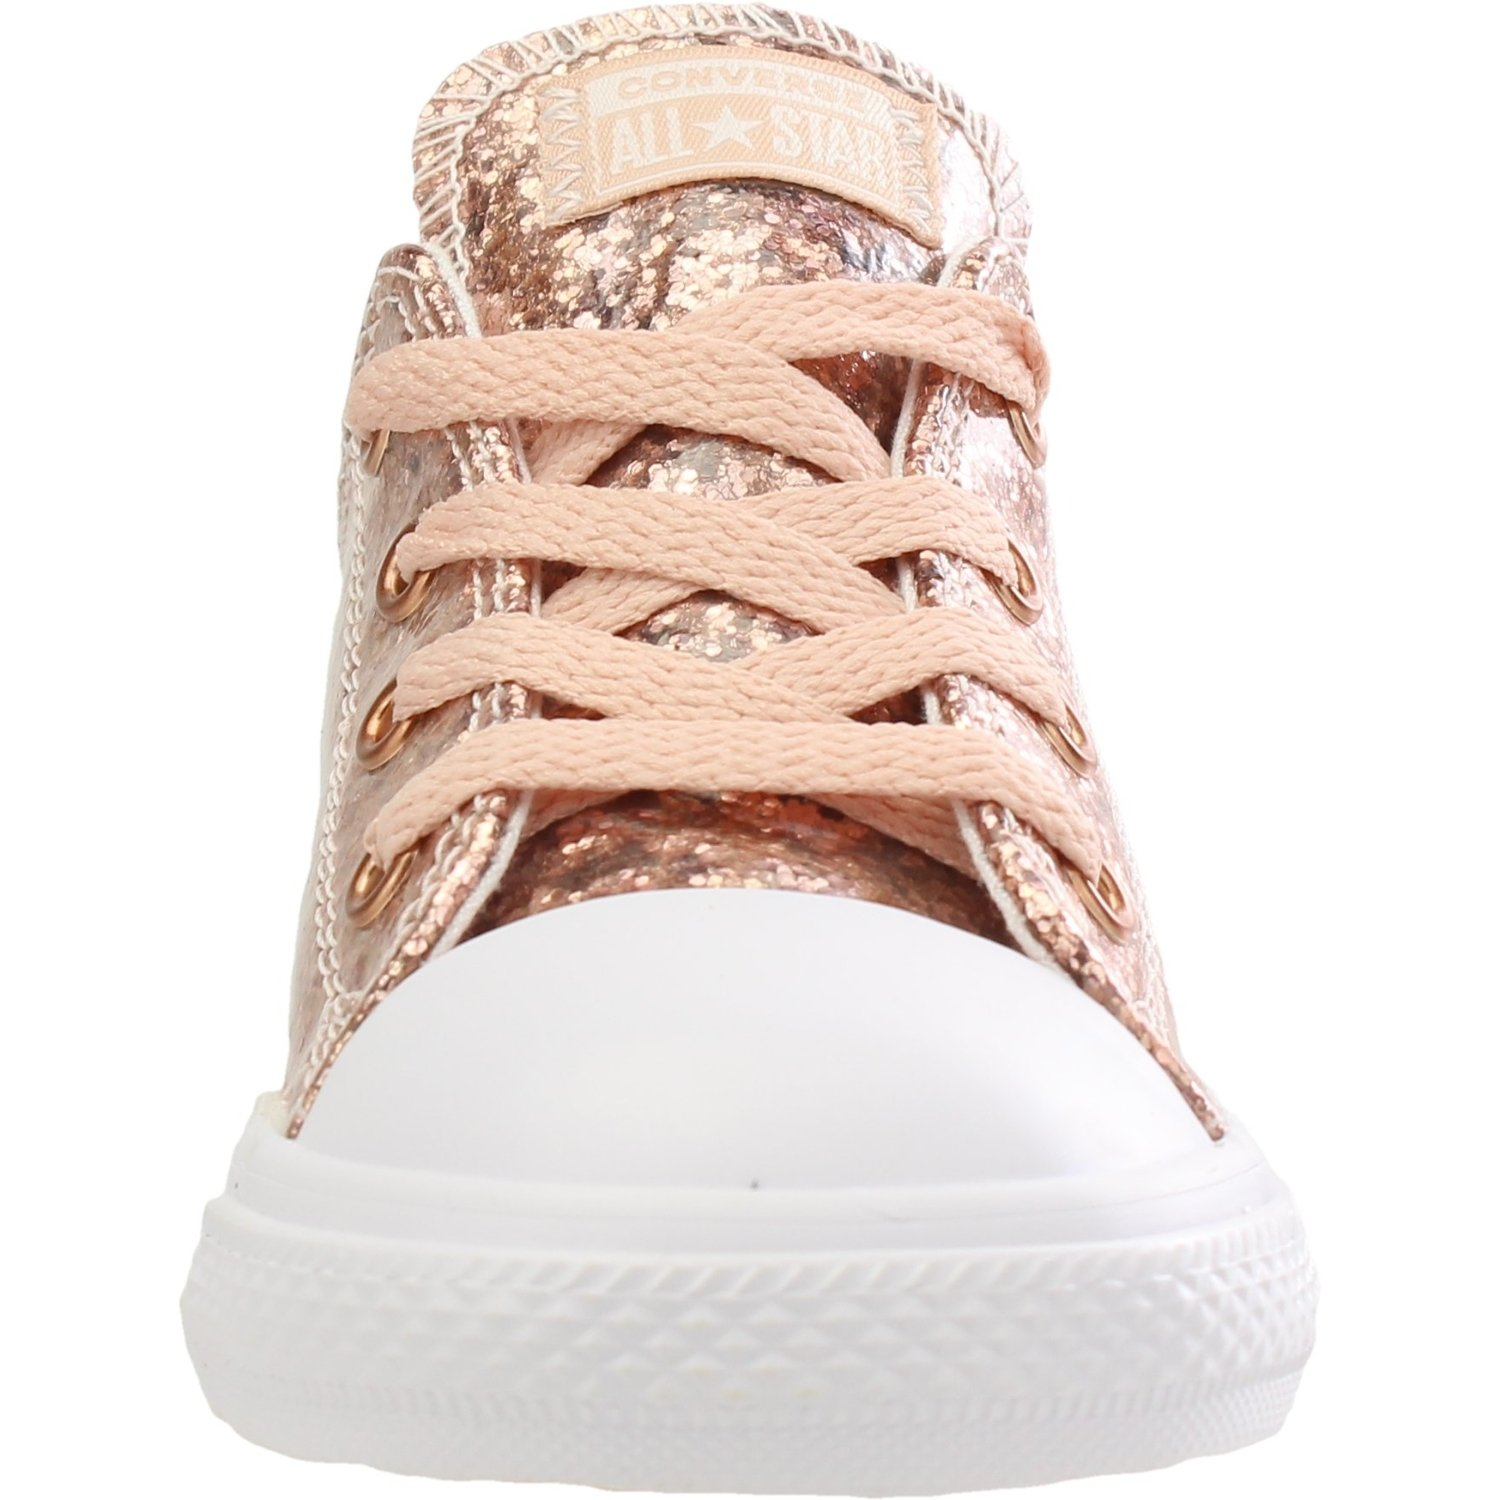 Converse Chuck Taylor All Star Glitter Dust Pink Synthetic Baby Trainers Shoes